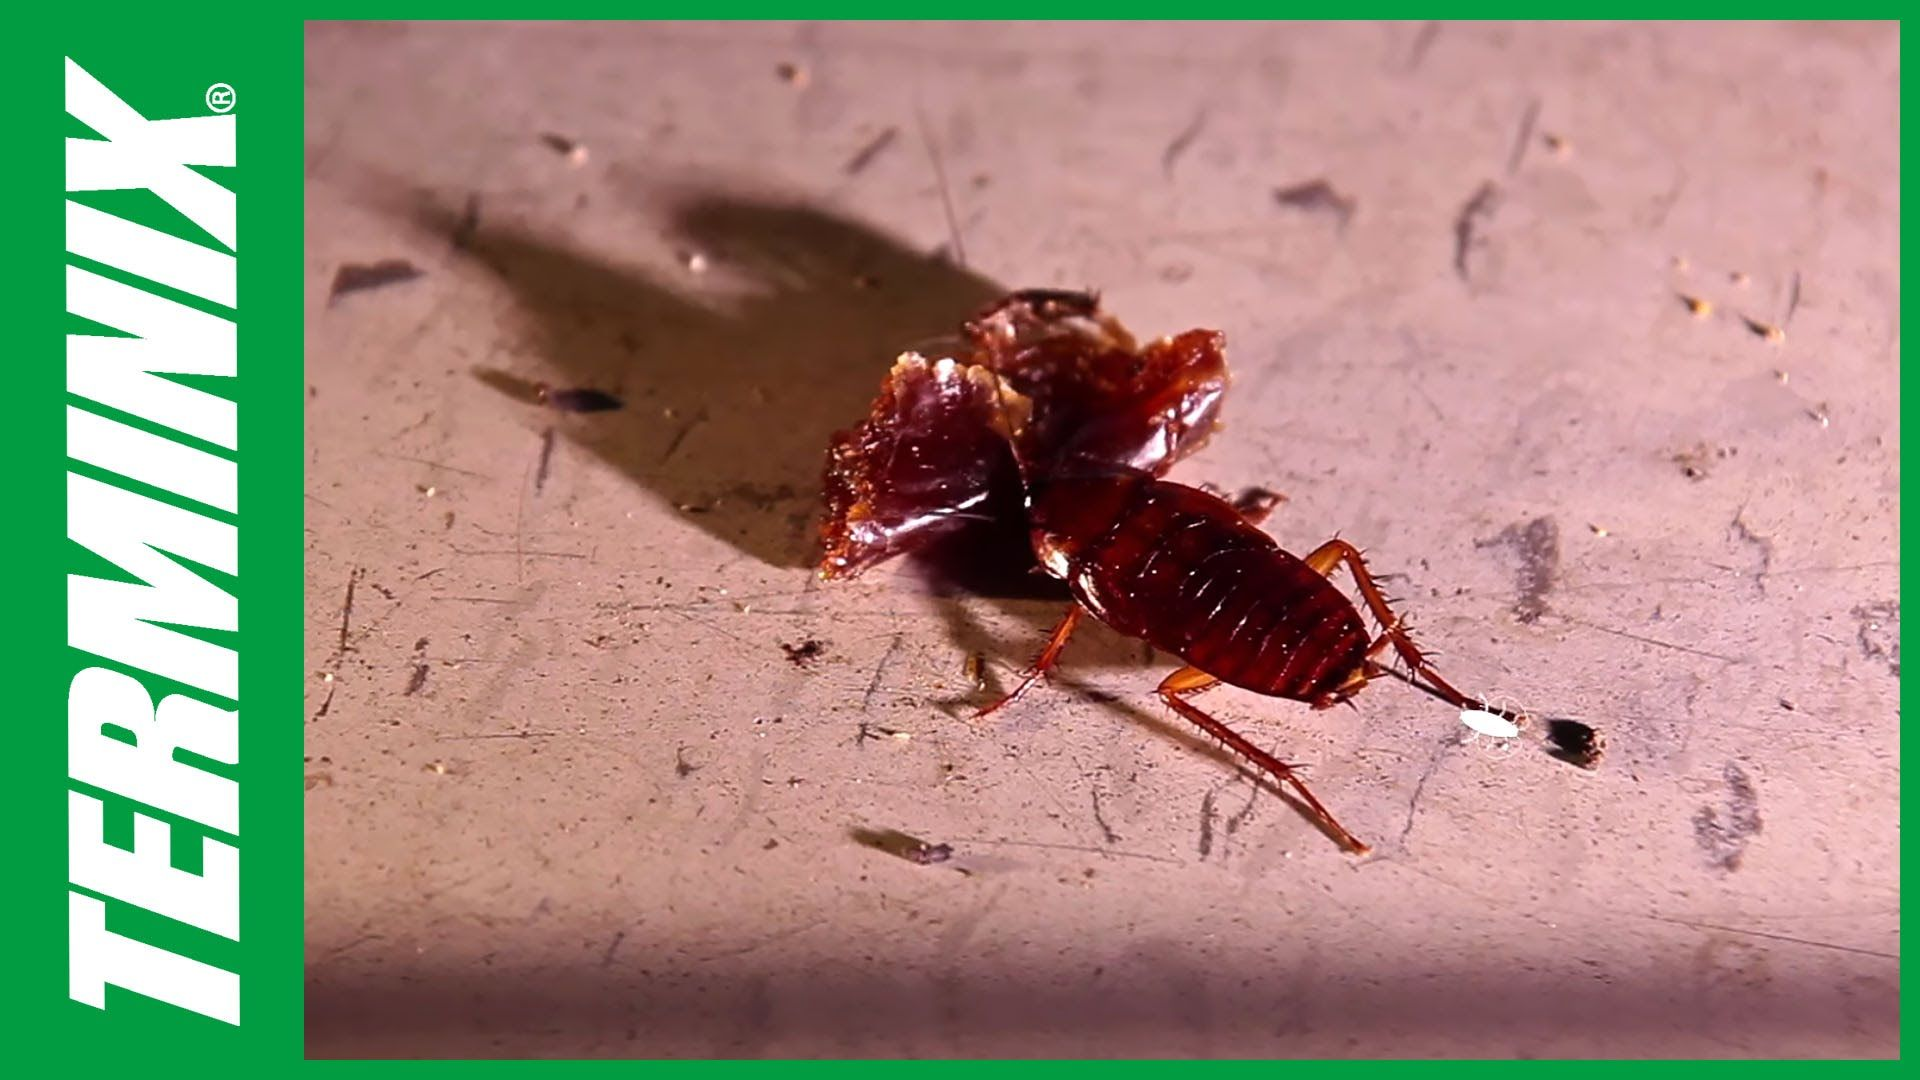 HowDoYouSay Roach? A functional way to use scientific